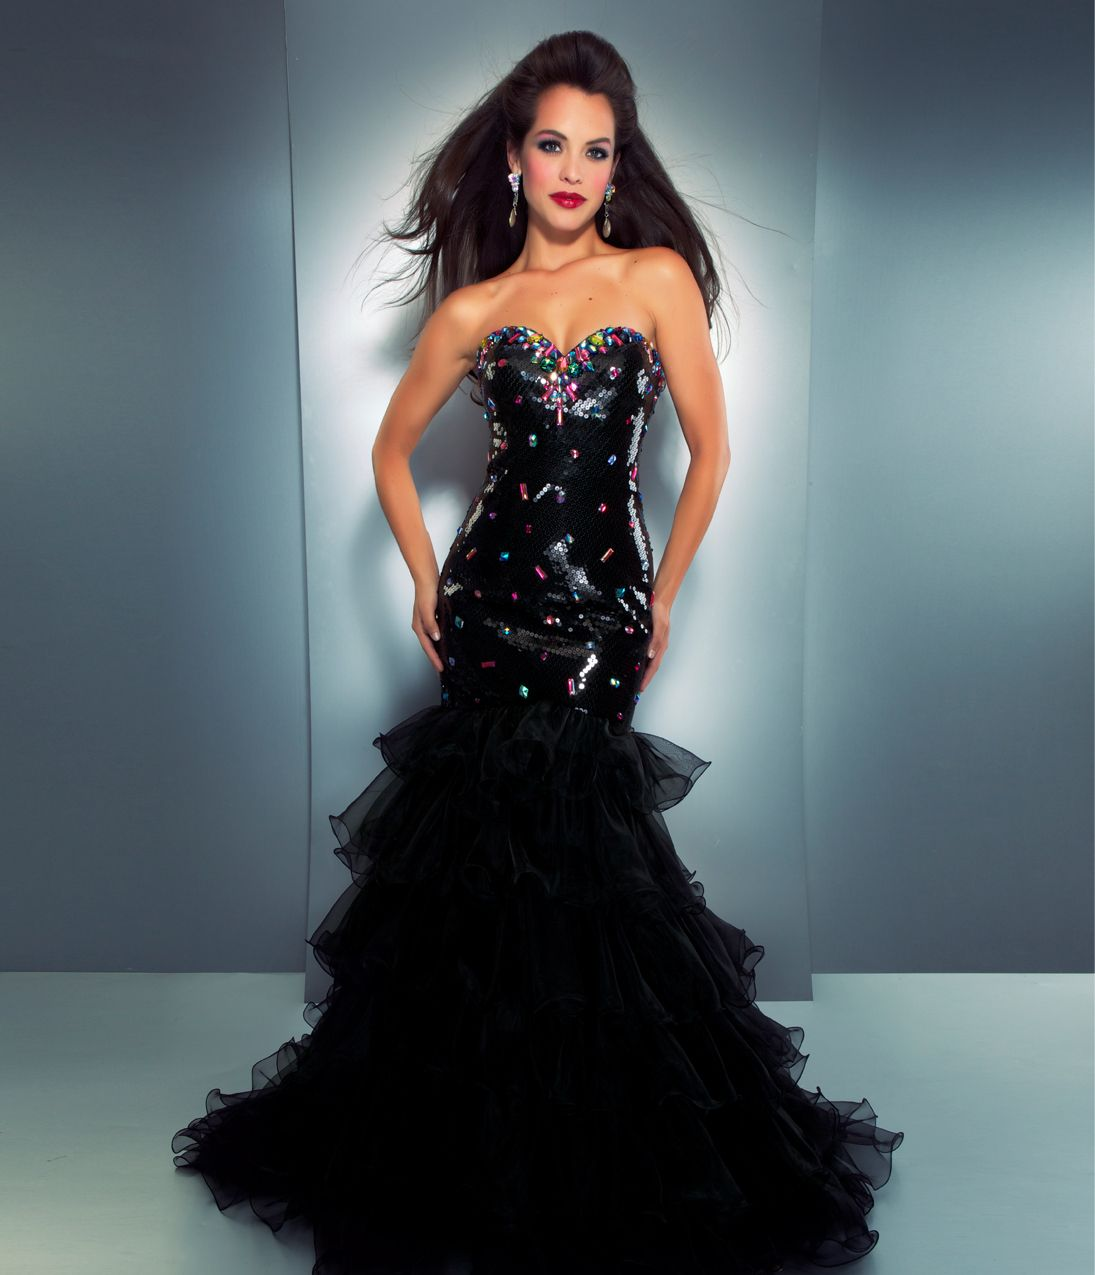 Black Sequin Mermaid Prom Dress - Missy Dress